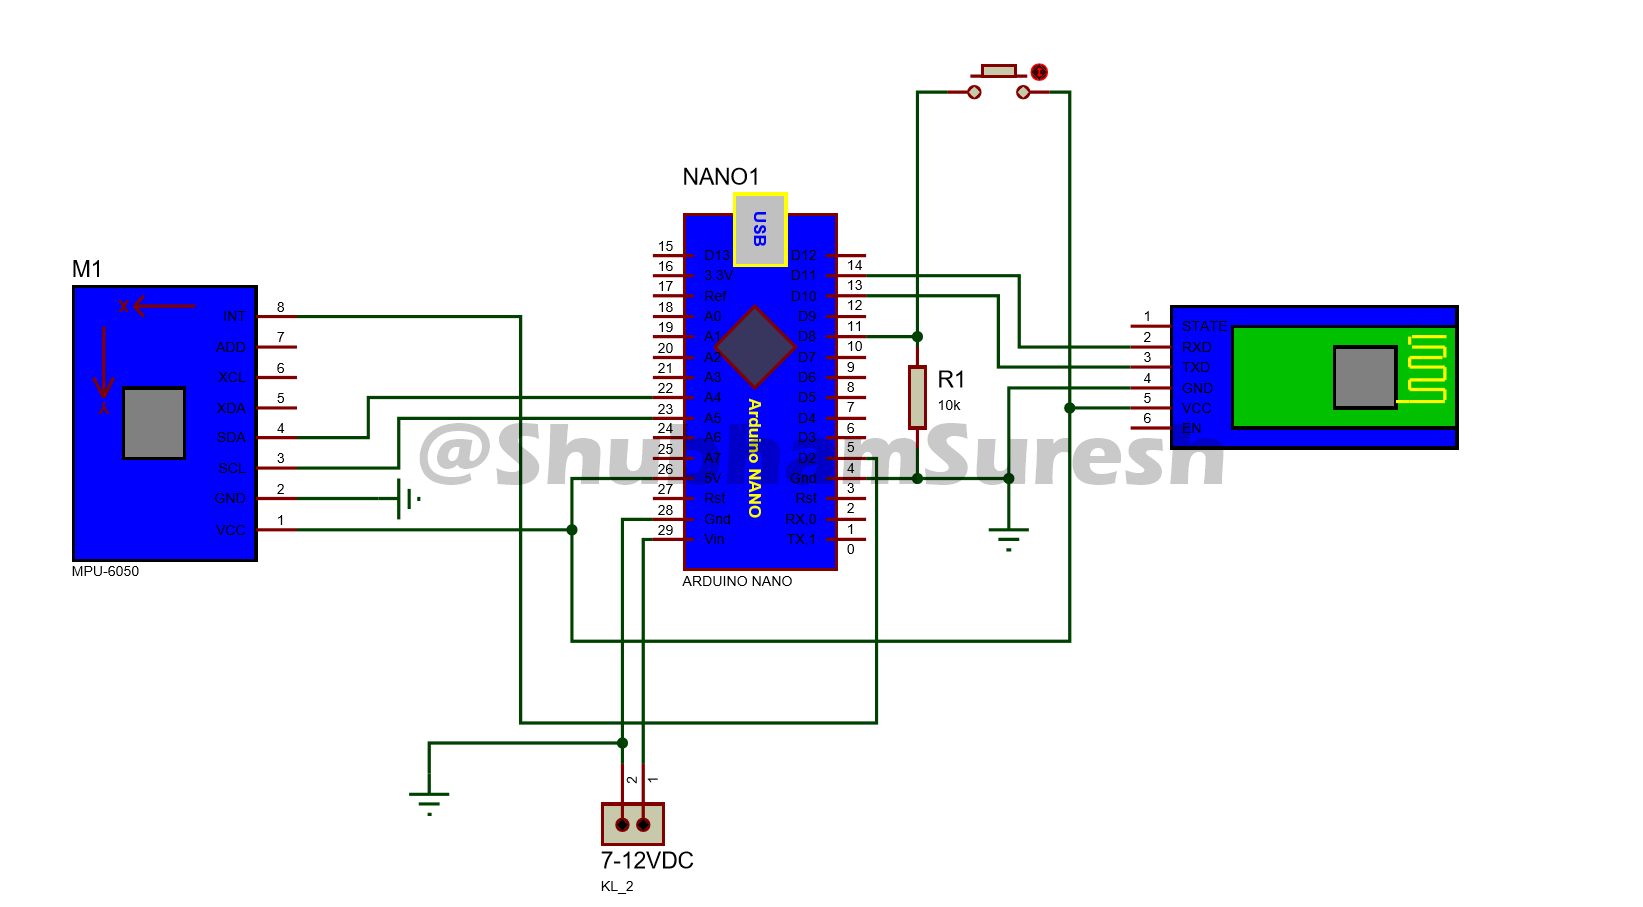 How to Make a Gesture Control Robot at Home - Arduino ... Cw Thumb Schematic Diagram Control on exhaust fan control diagram, documentation control diagram, source code control diagram, relay control diagram, control loop block diagram, audio control diagram, electrical control diagram, logic control diagram, design control diagram, span of control diagram, project control diagram, mechanical control diagram, cnc machine control diagram,